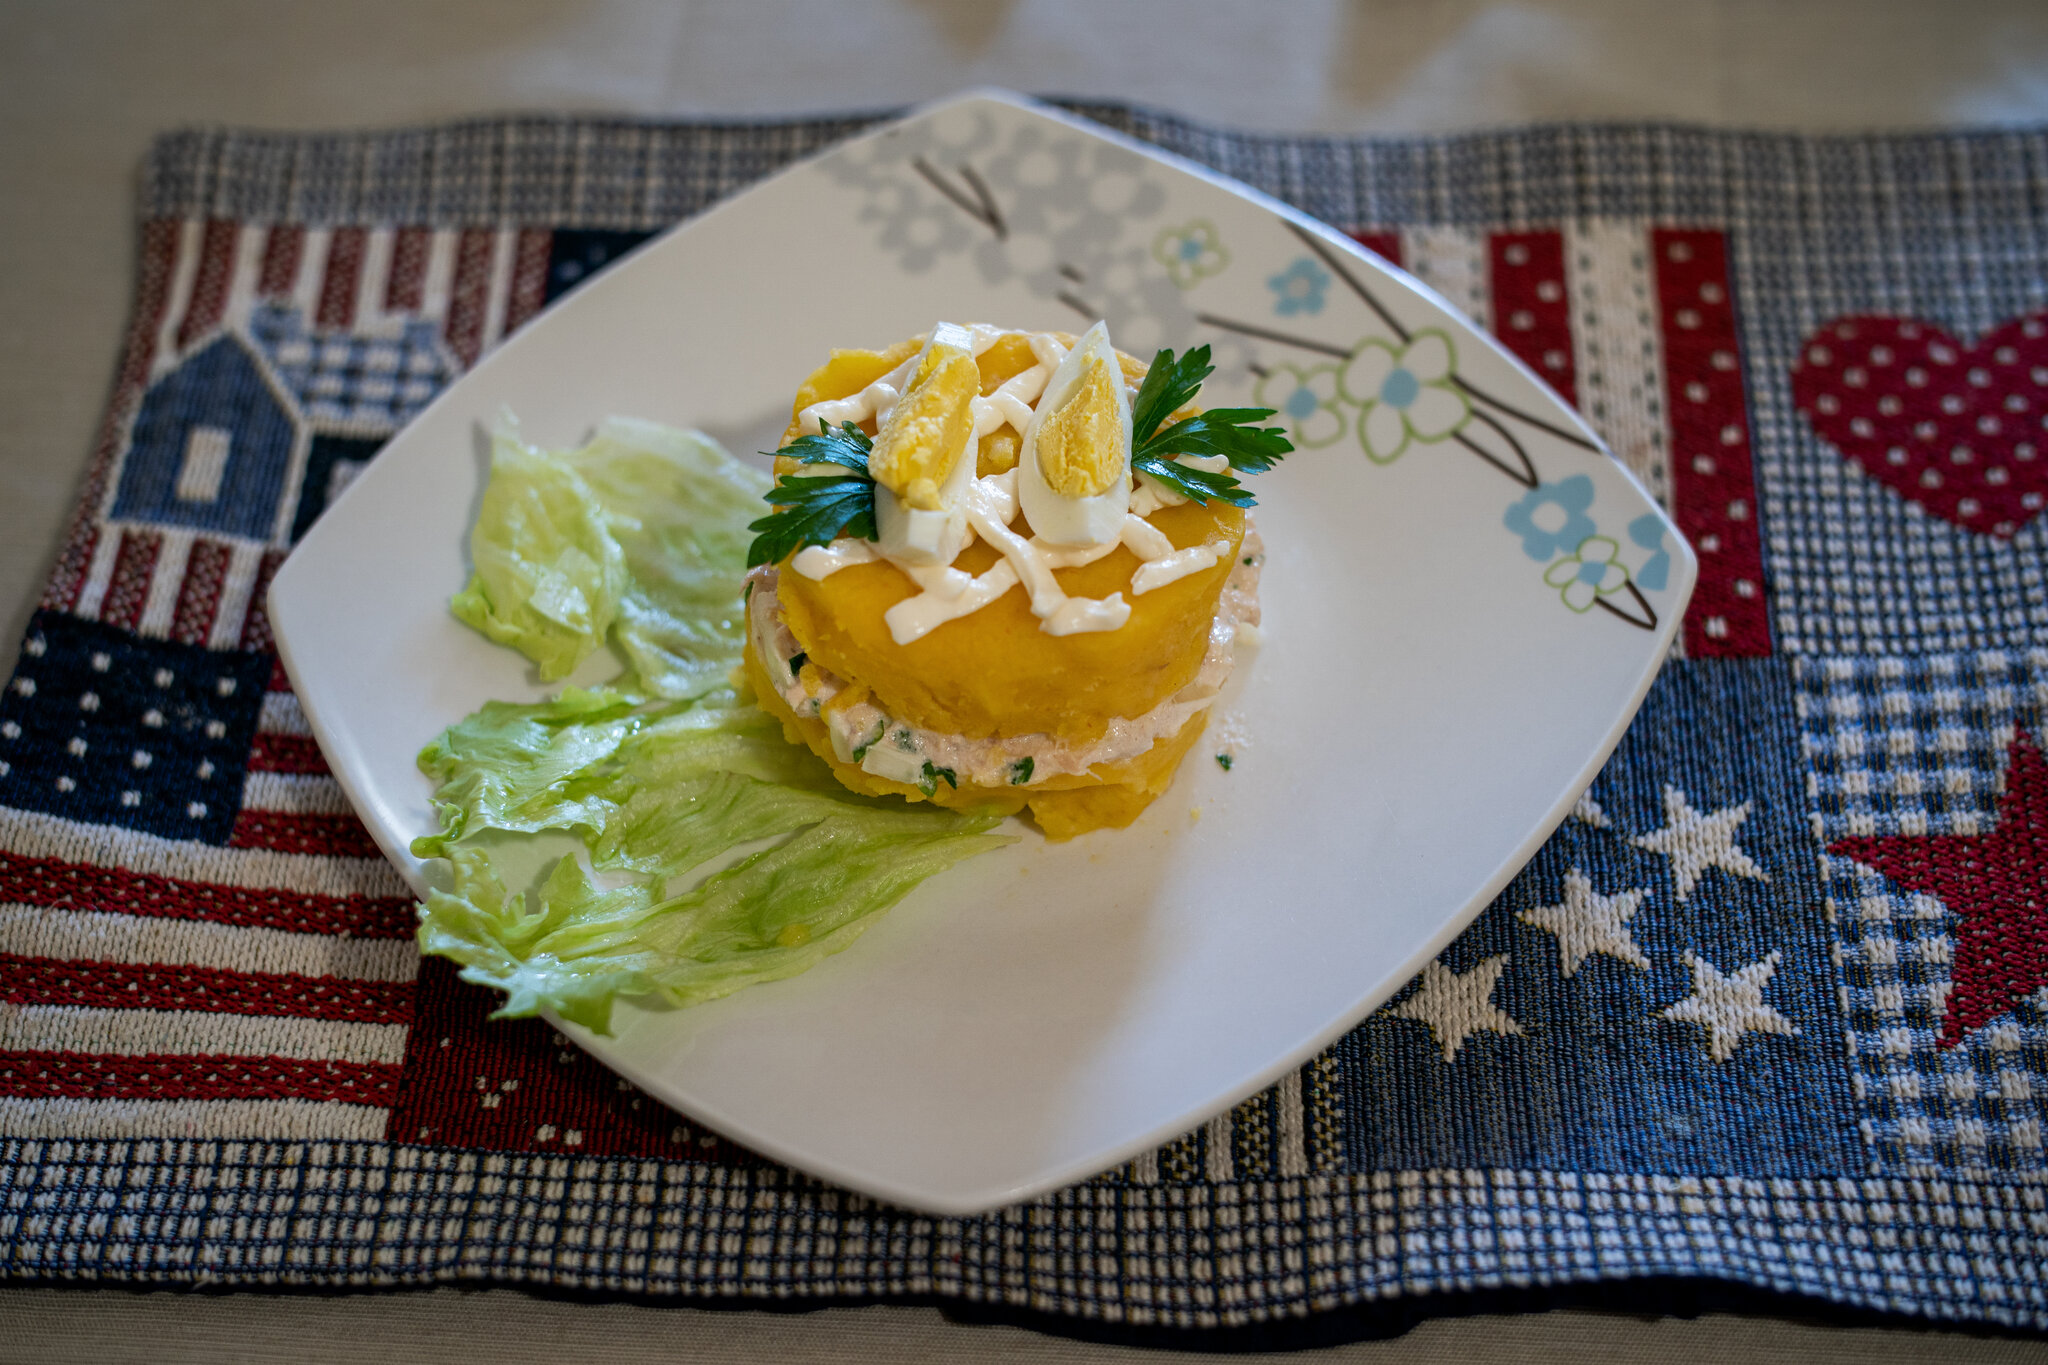 Causa rellena, a traditional Peruvian dish made with potatoes, lettuce, eggs, and onions, all products picked up from Masbia Soup Kitchen in Brooklyn